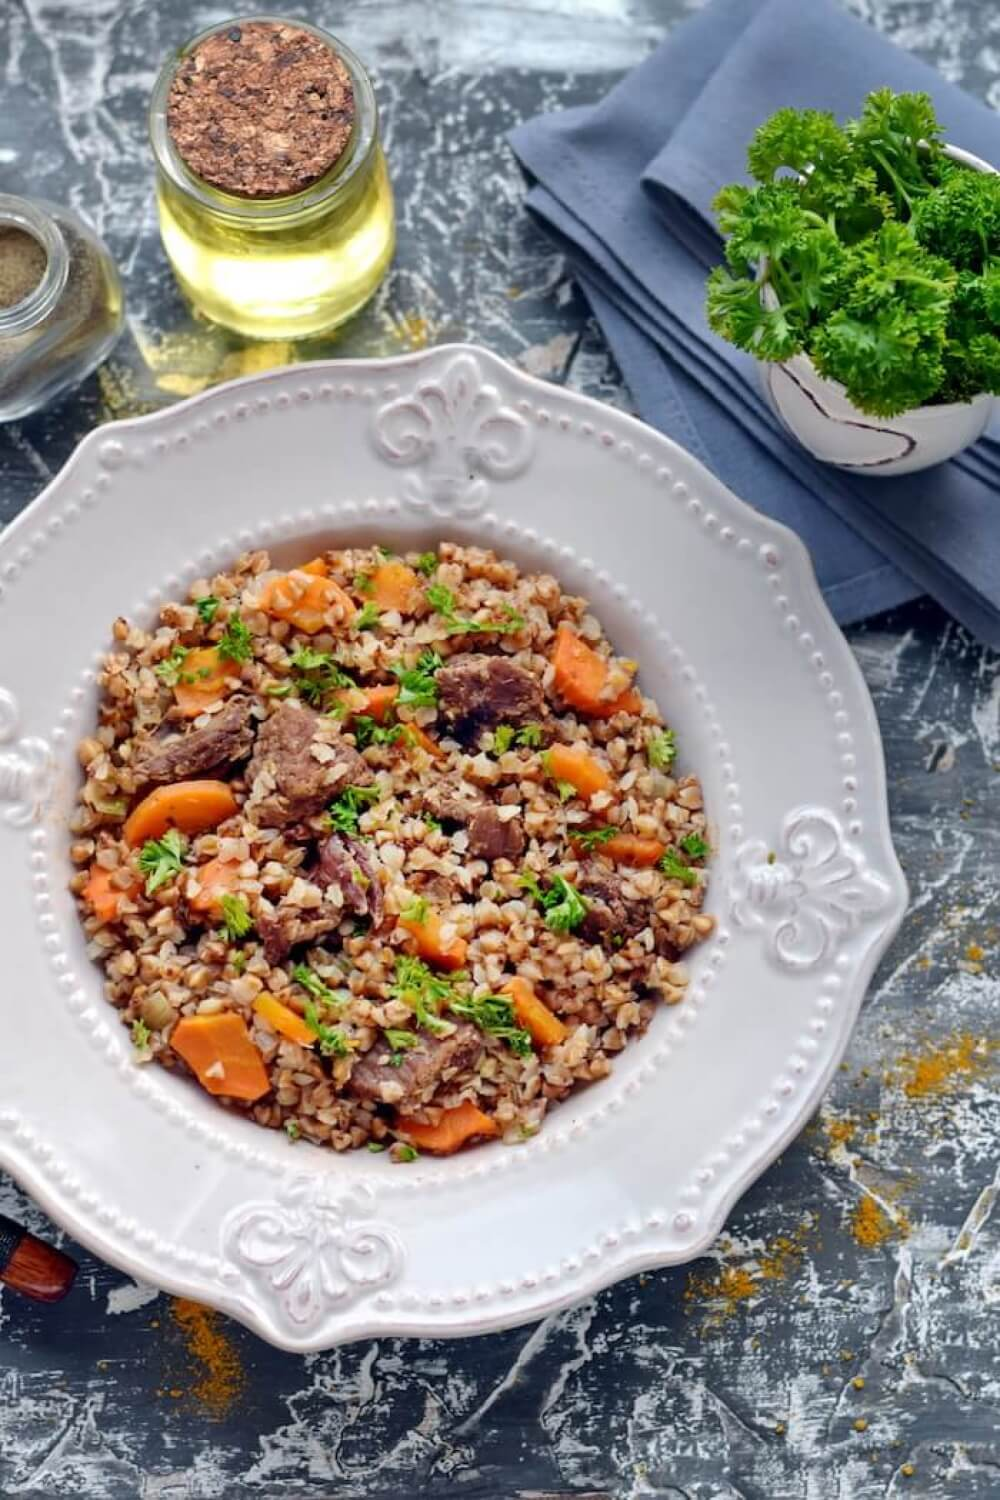 Russian Stewed Buckwheat with Beef